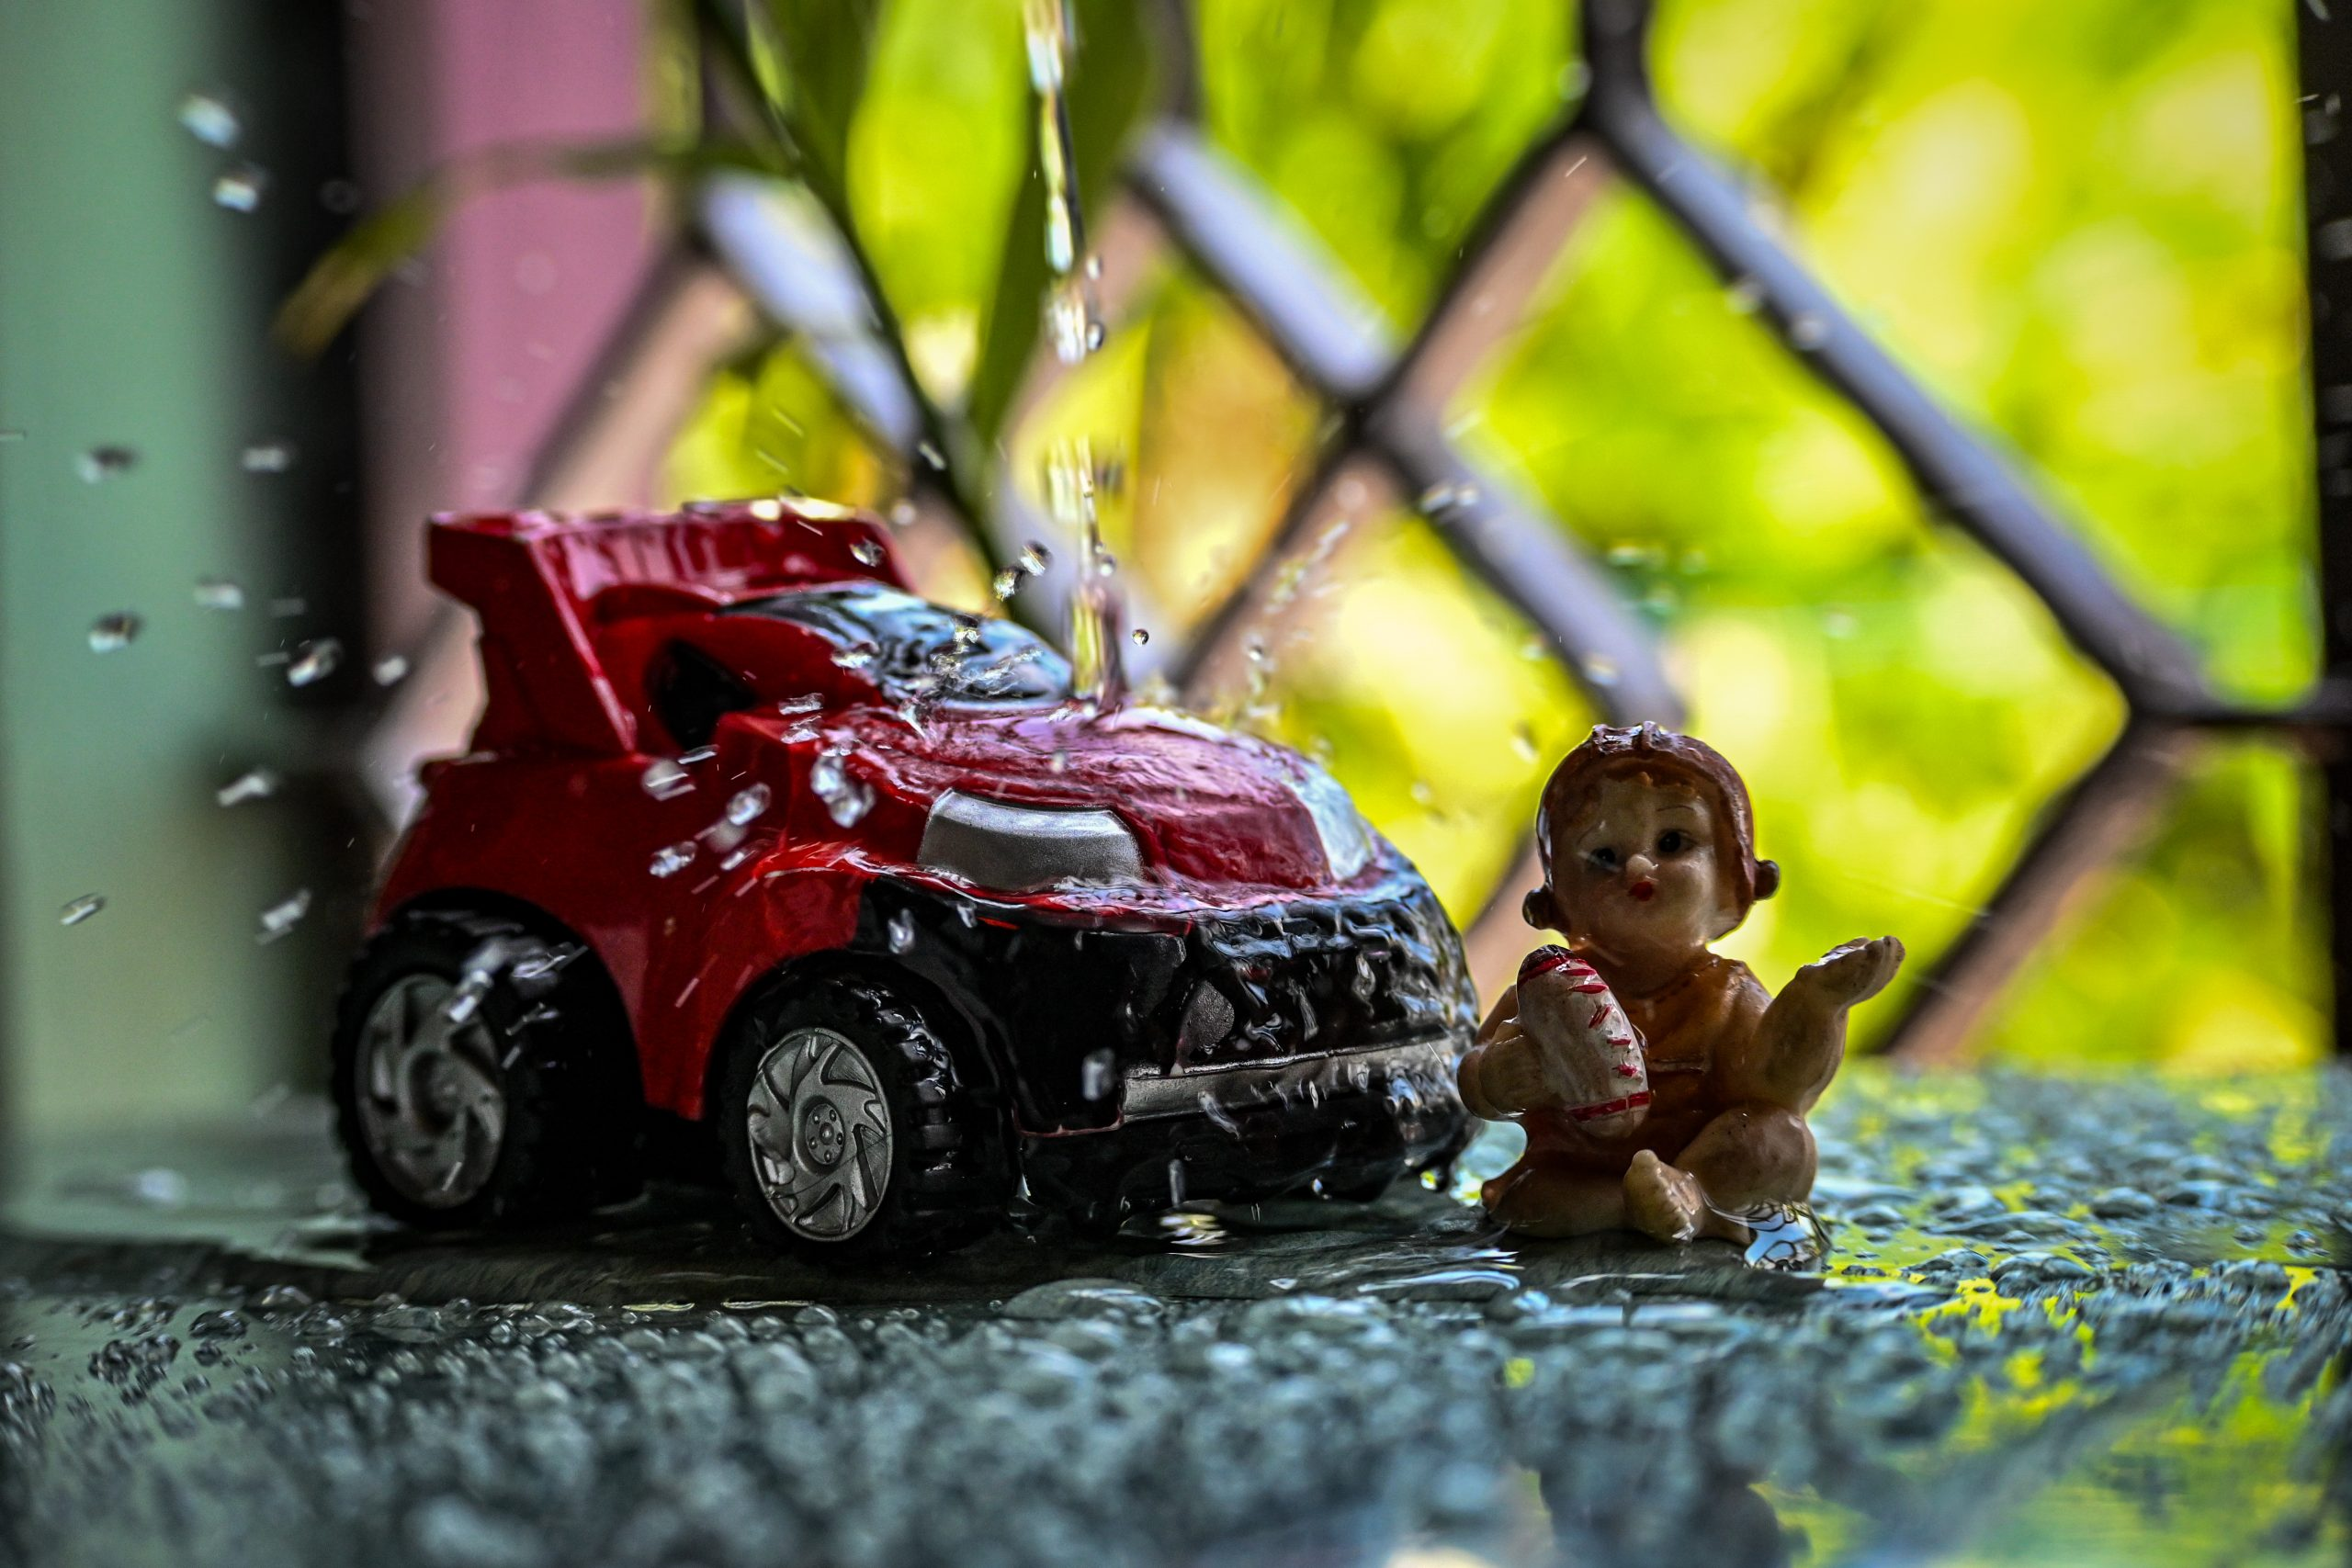 water falling over Toy car